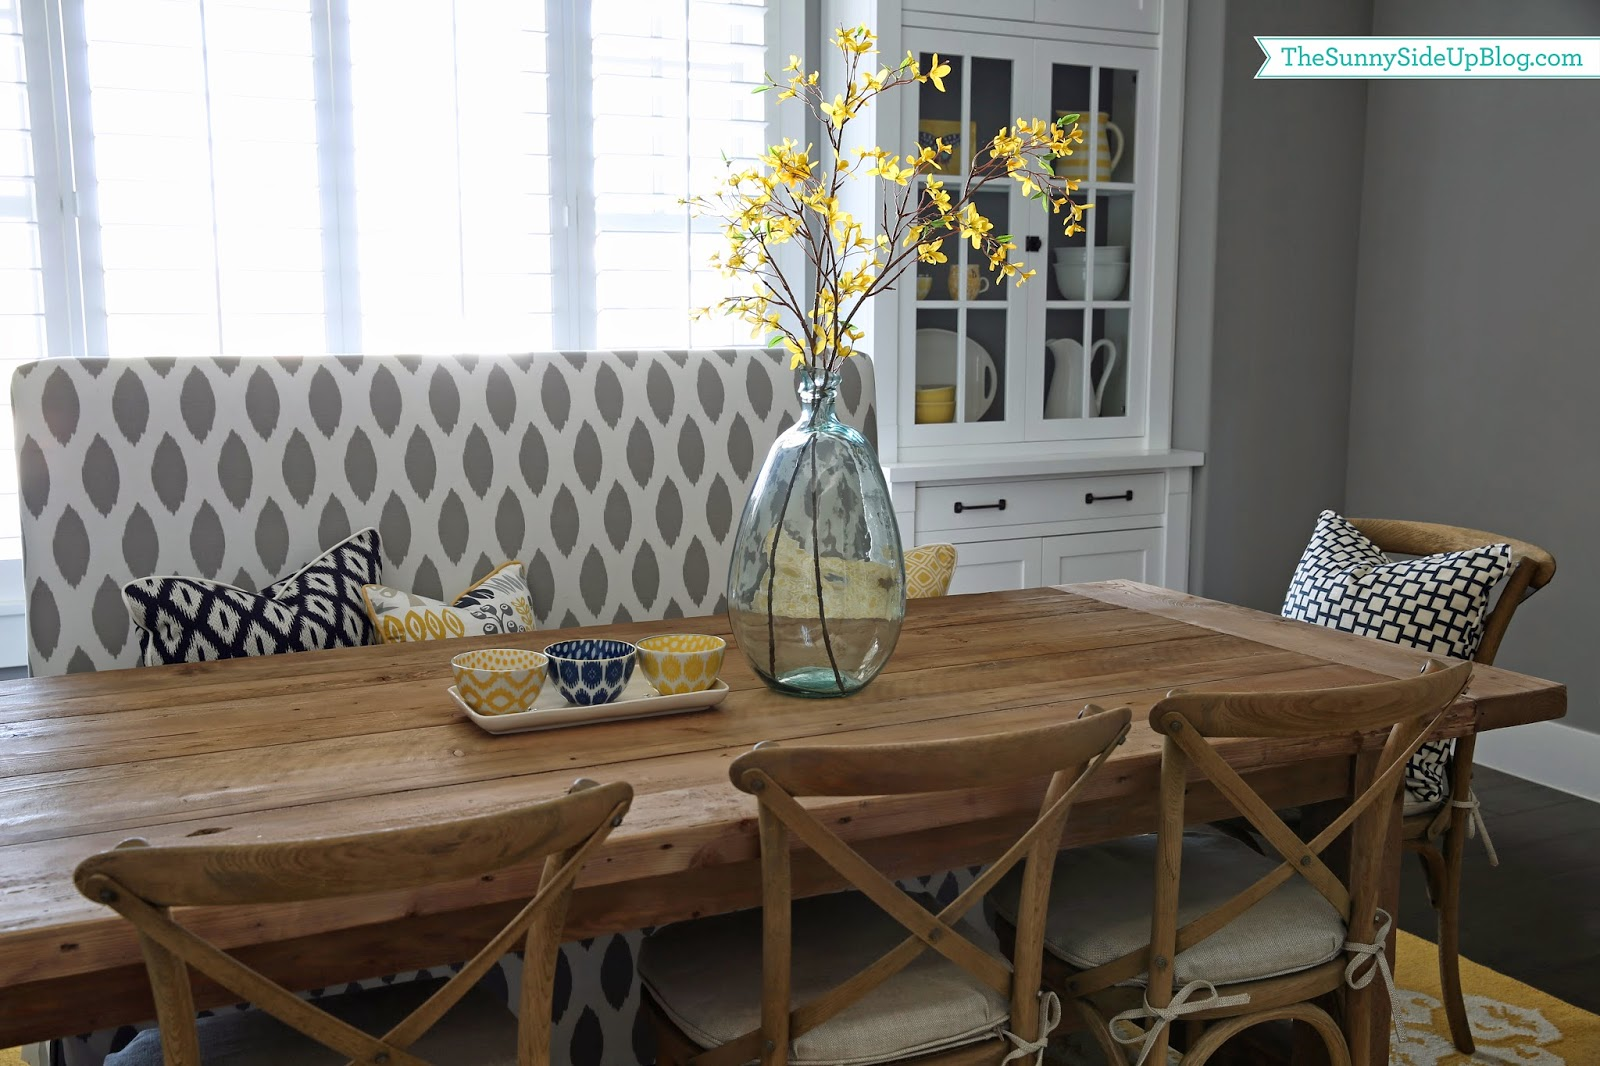 Summer dining table decor the sunny side up blog for How to decorate my dining room table